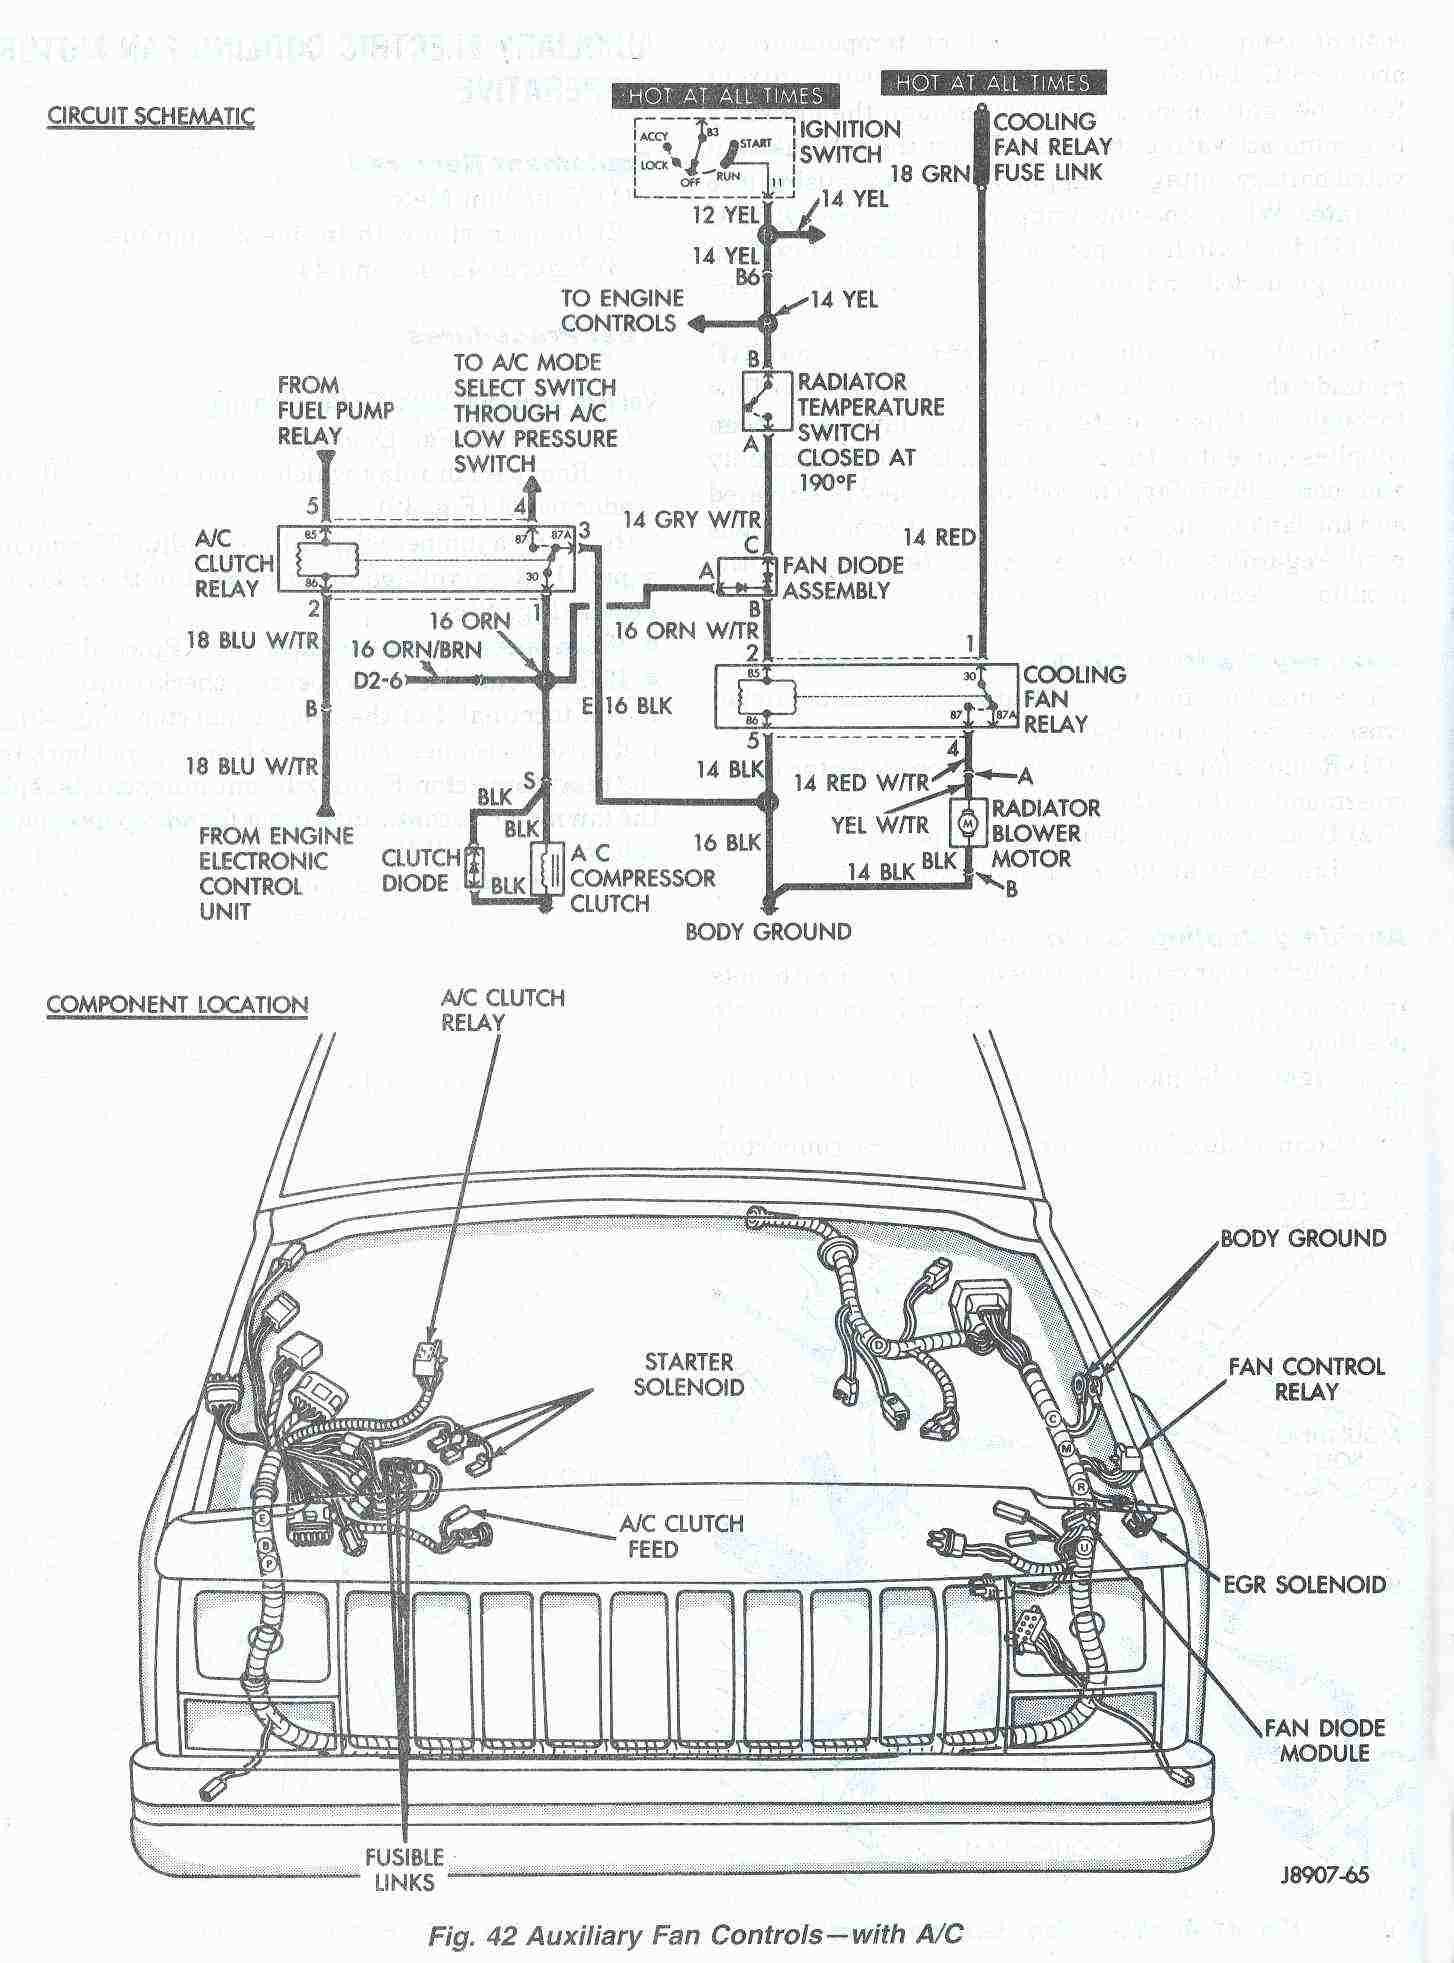 e8c83109bad6c41d377df8c1cb7a8dc4 at the asd relay if vole is not b16 check fuse 20 30 a good there 1998 jeep cherokee wiring harness diagram at readyjetset.co